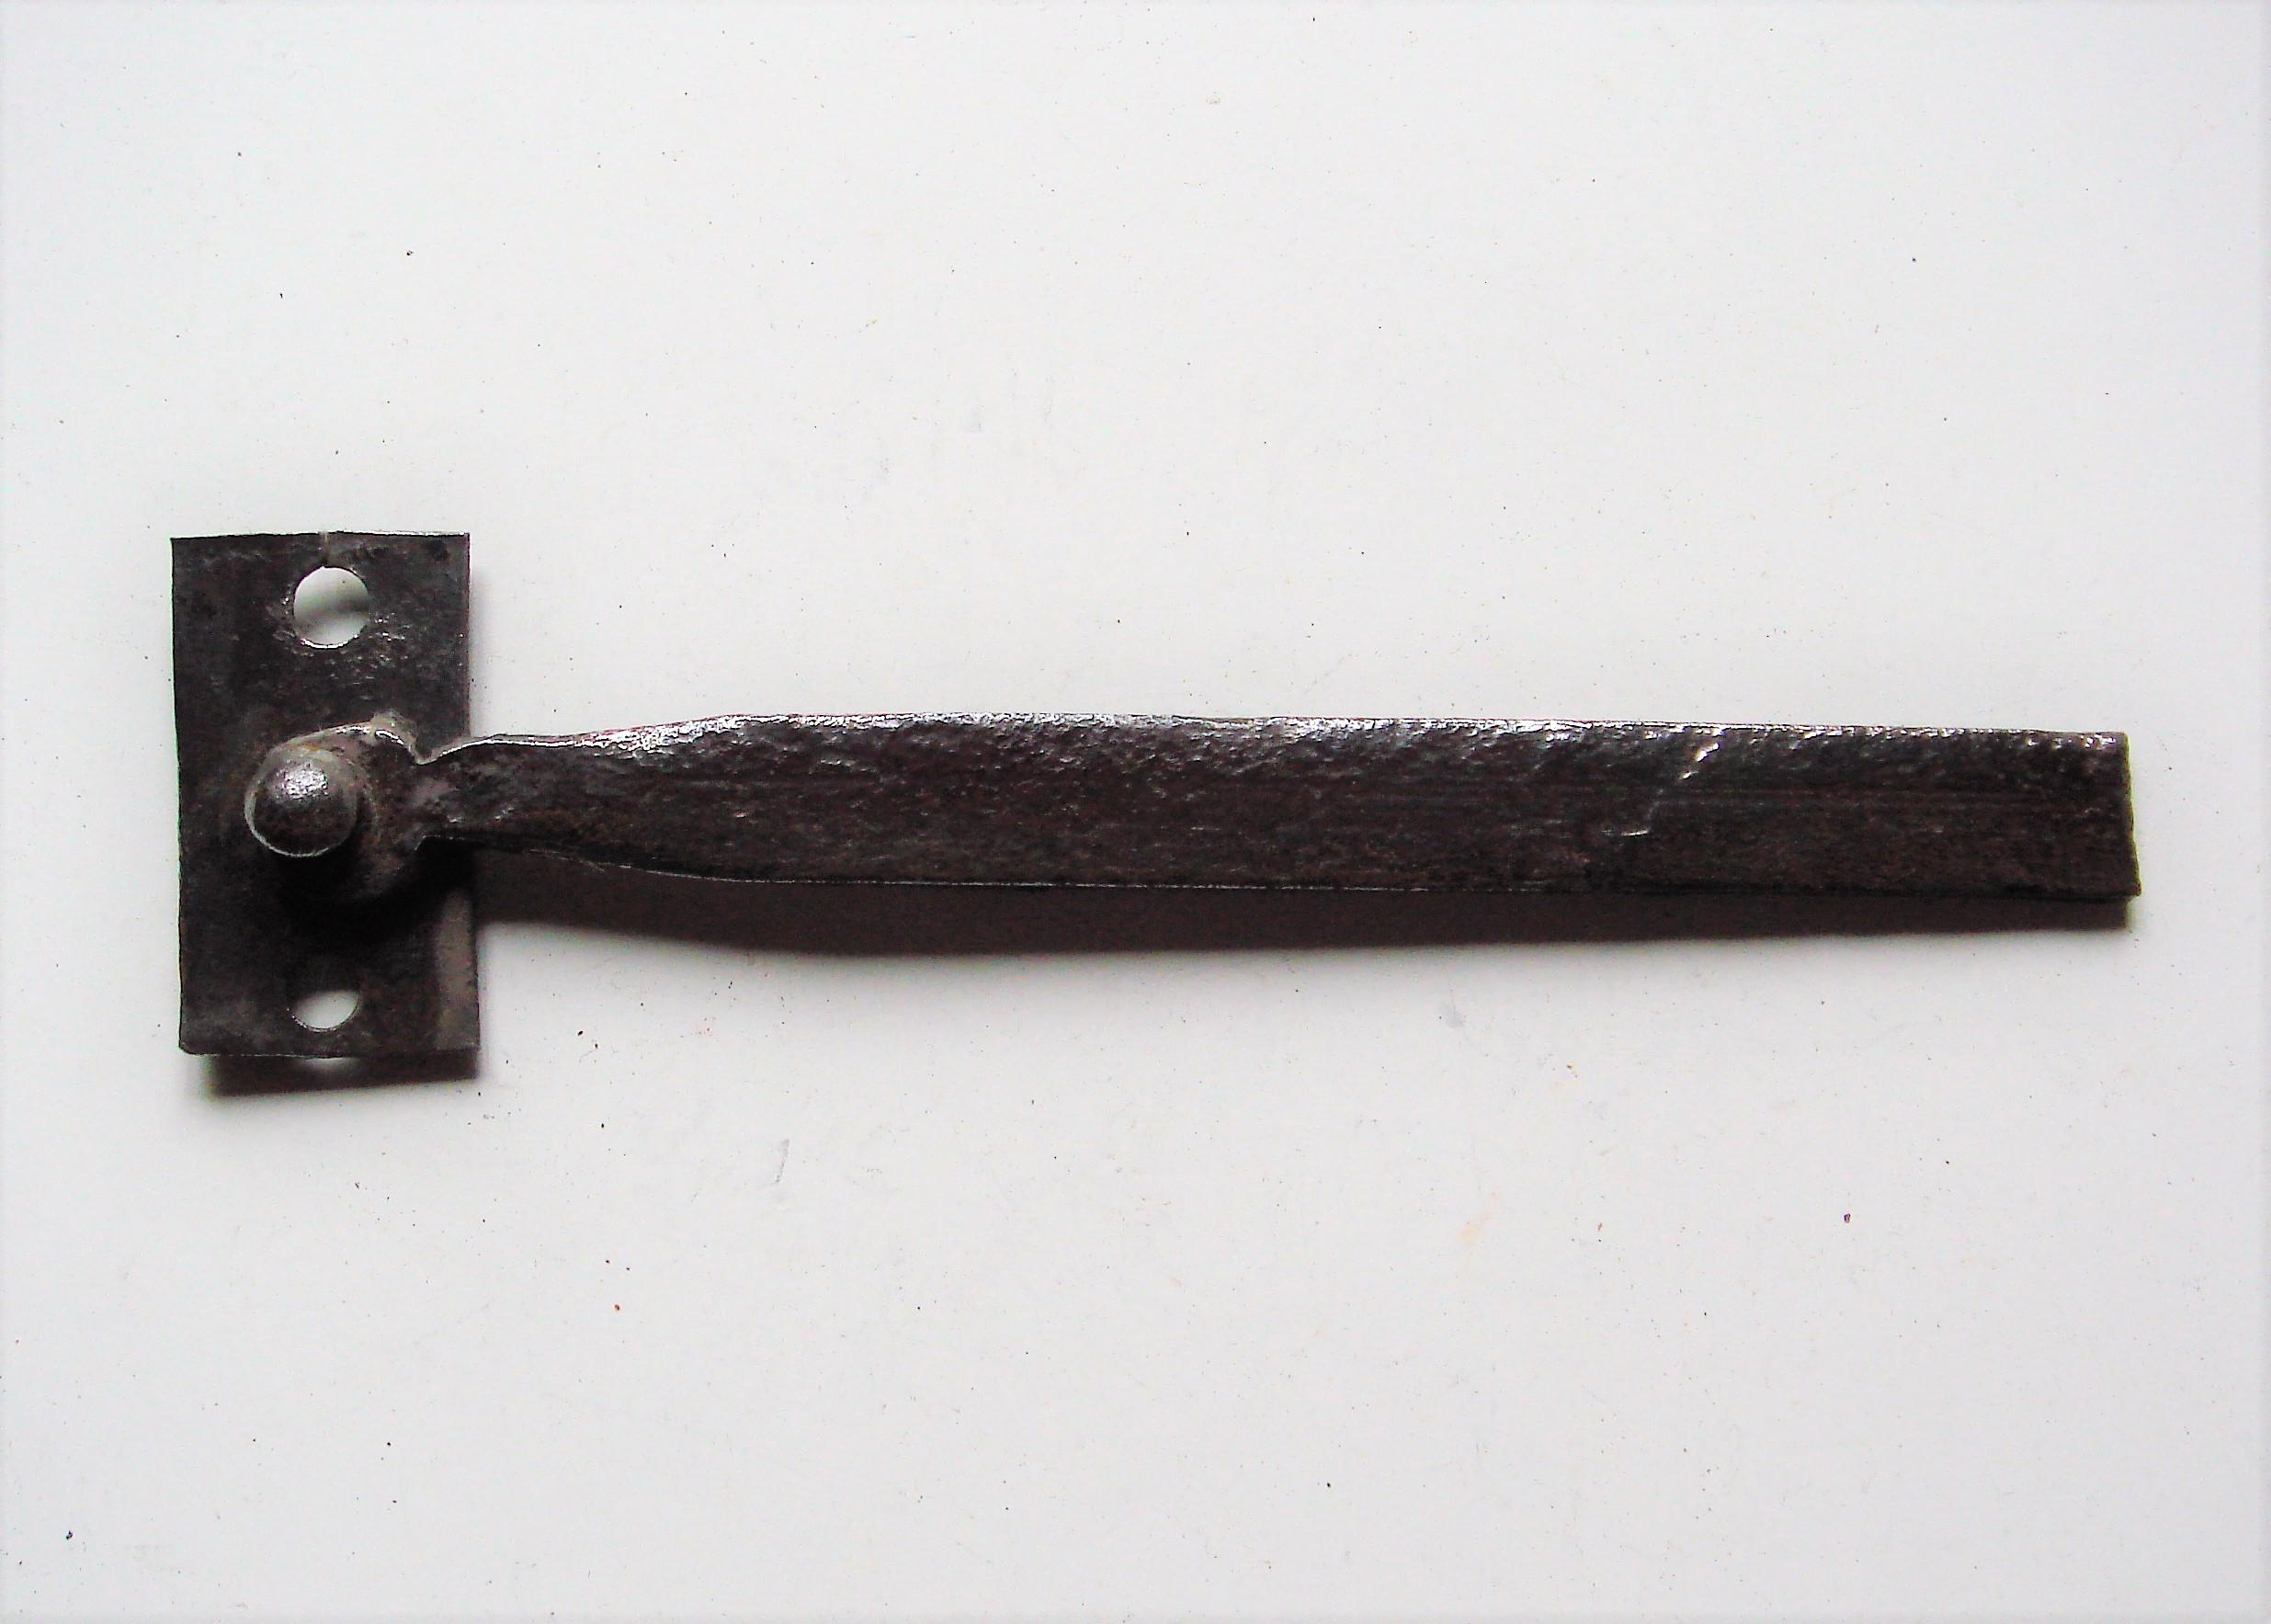 Original 18th & 19th Century Replacement Iron Latch Bars for Cottage & Stable Door